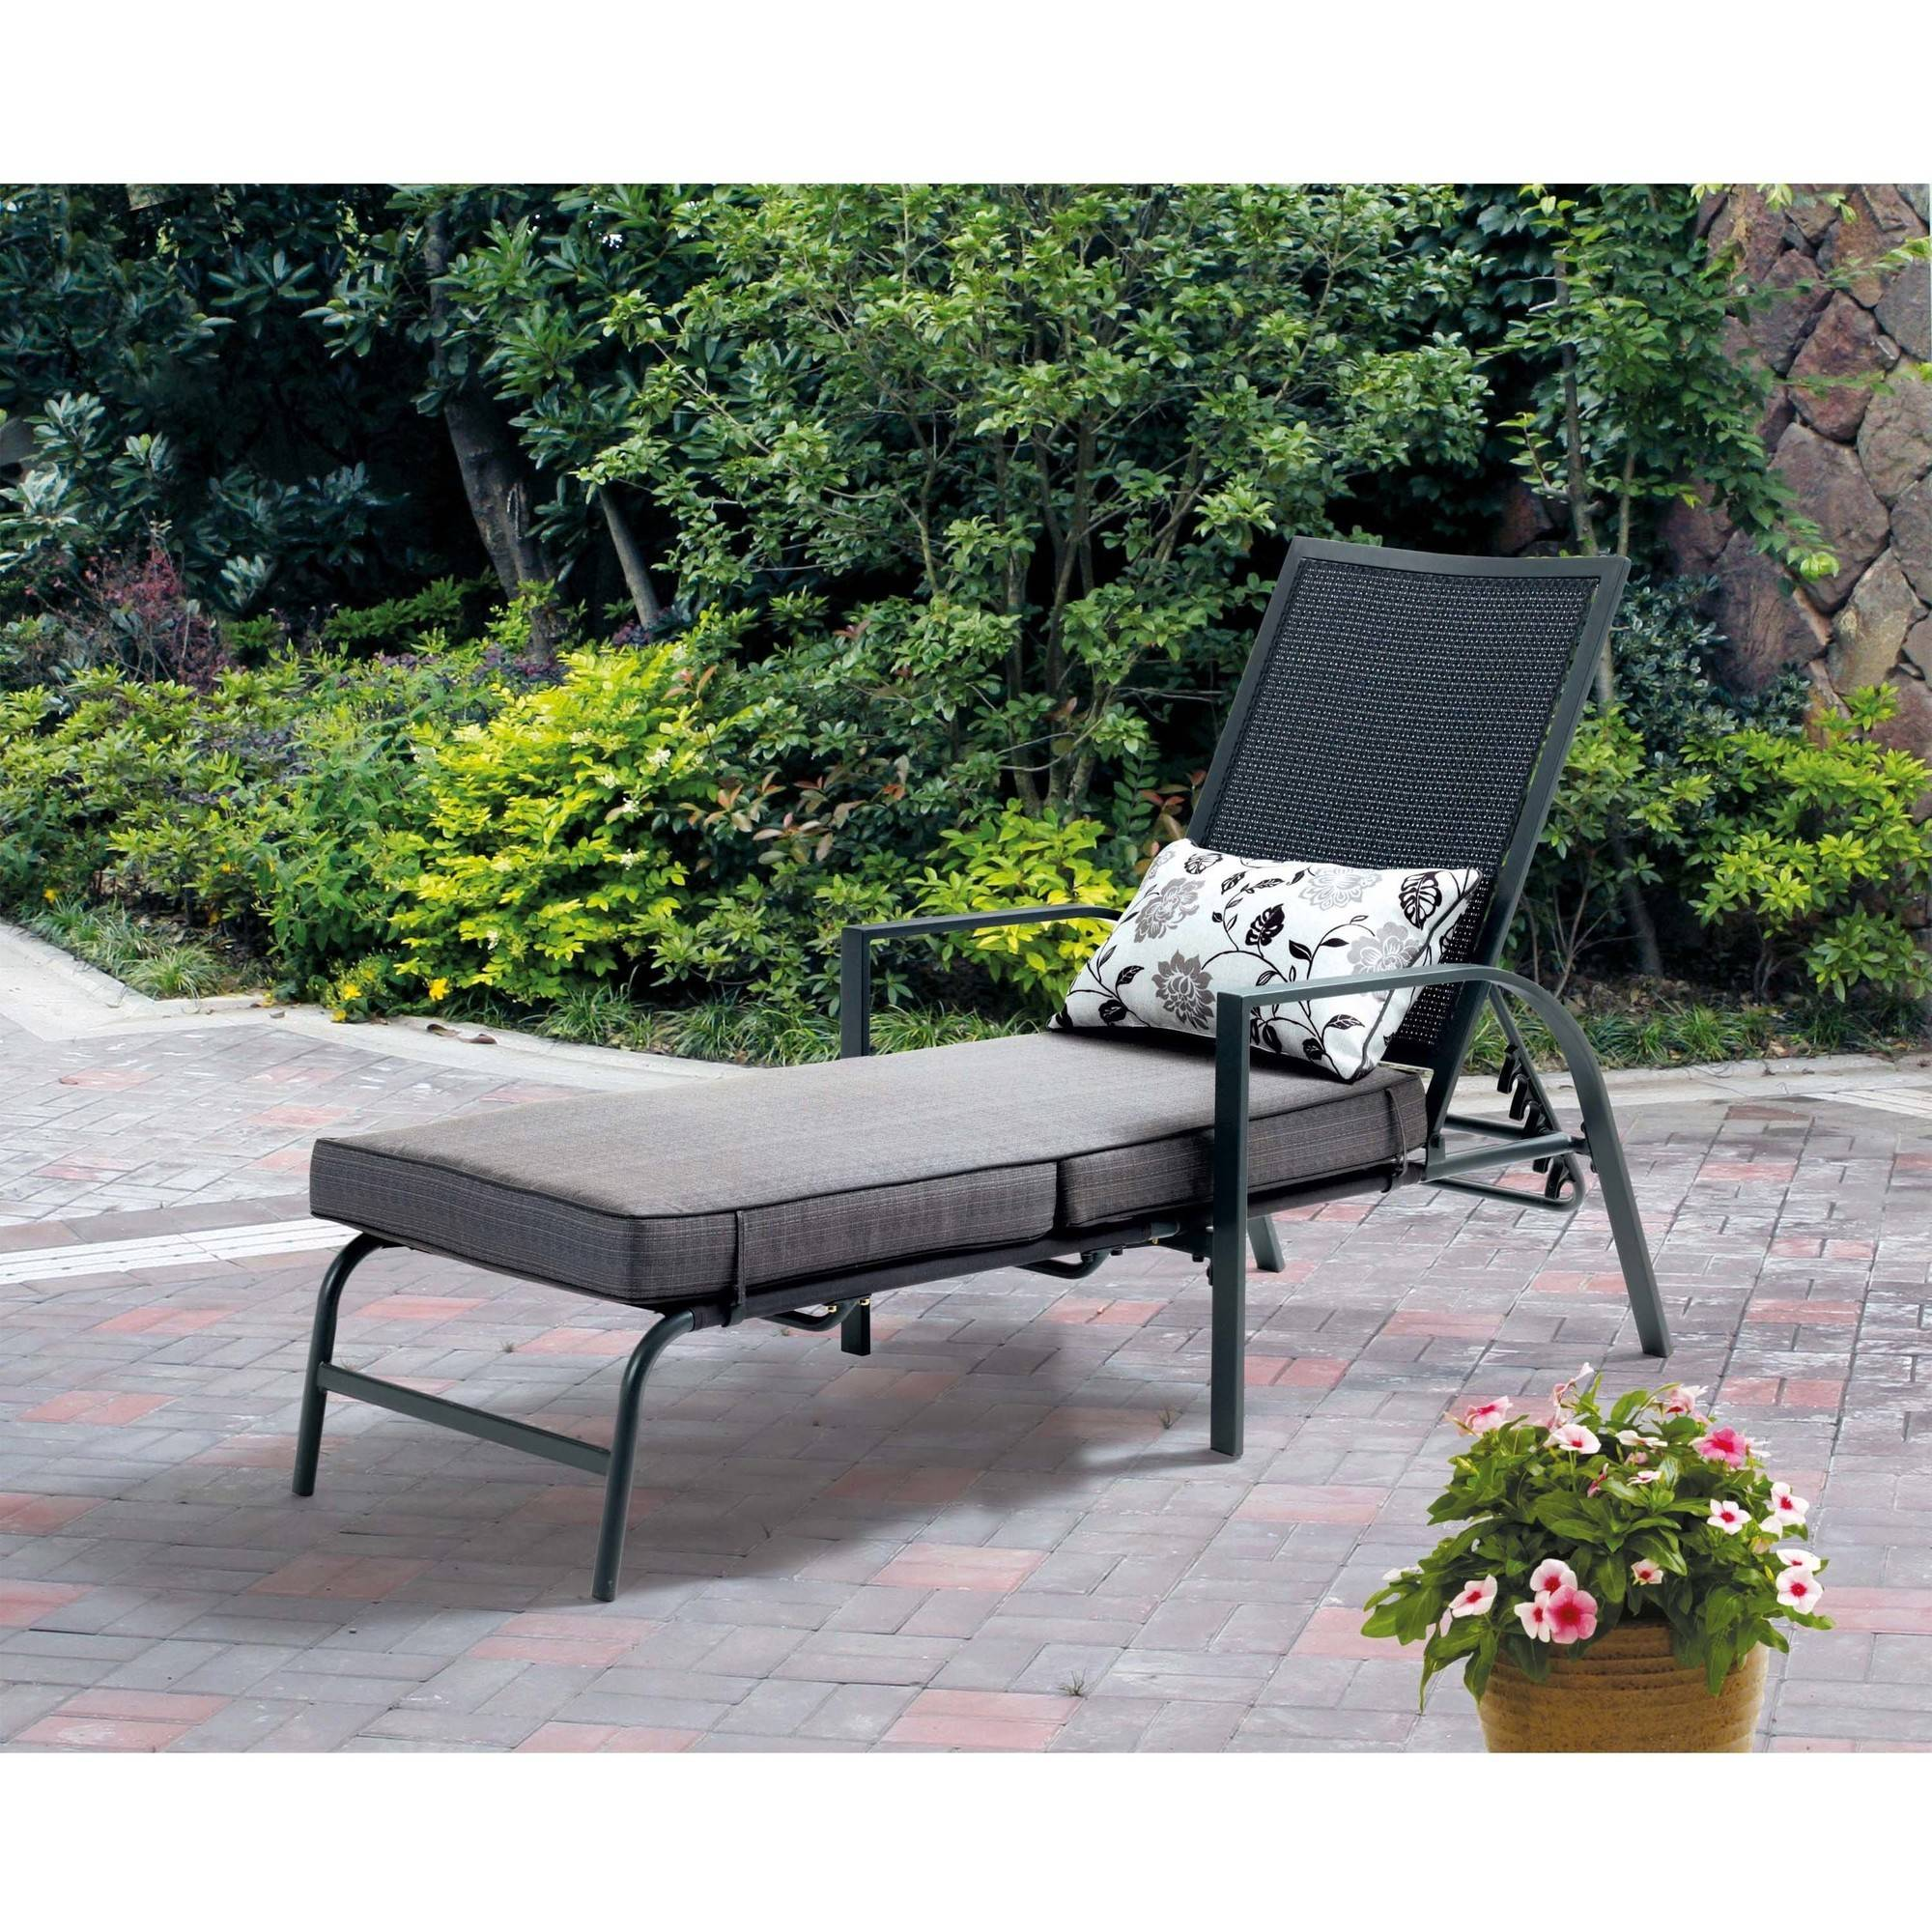 Mainstays Alexandra Square Chaise Lounge, Gray Texture with Leaf Design